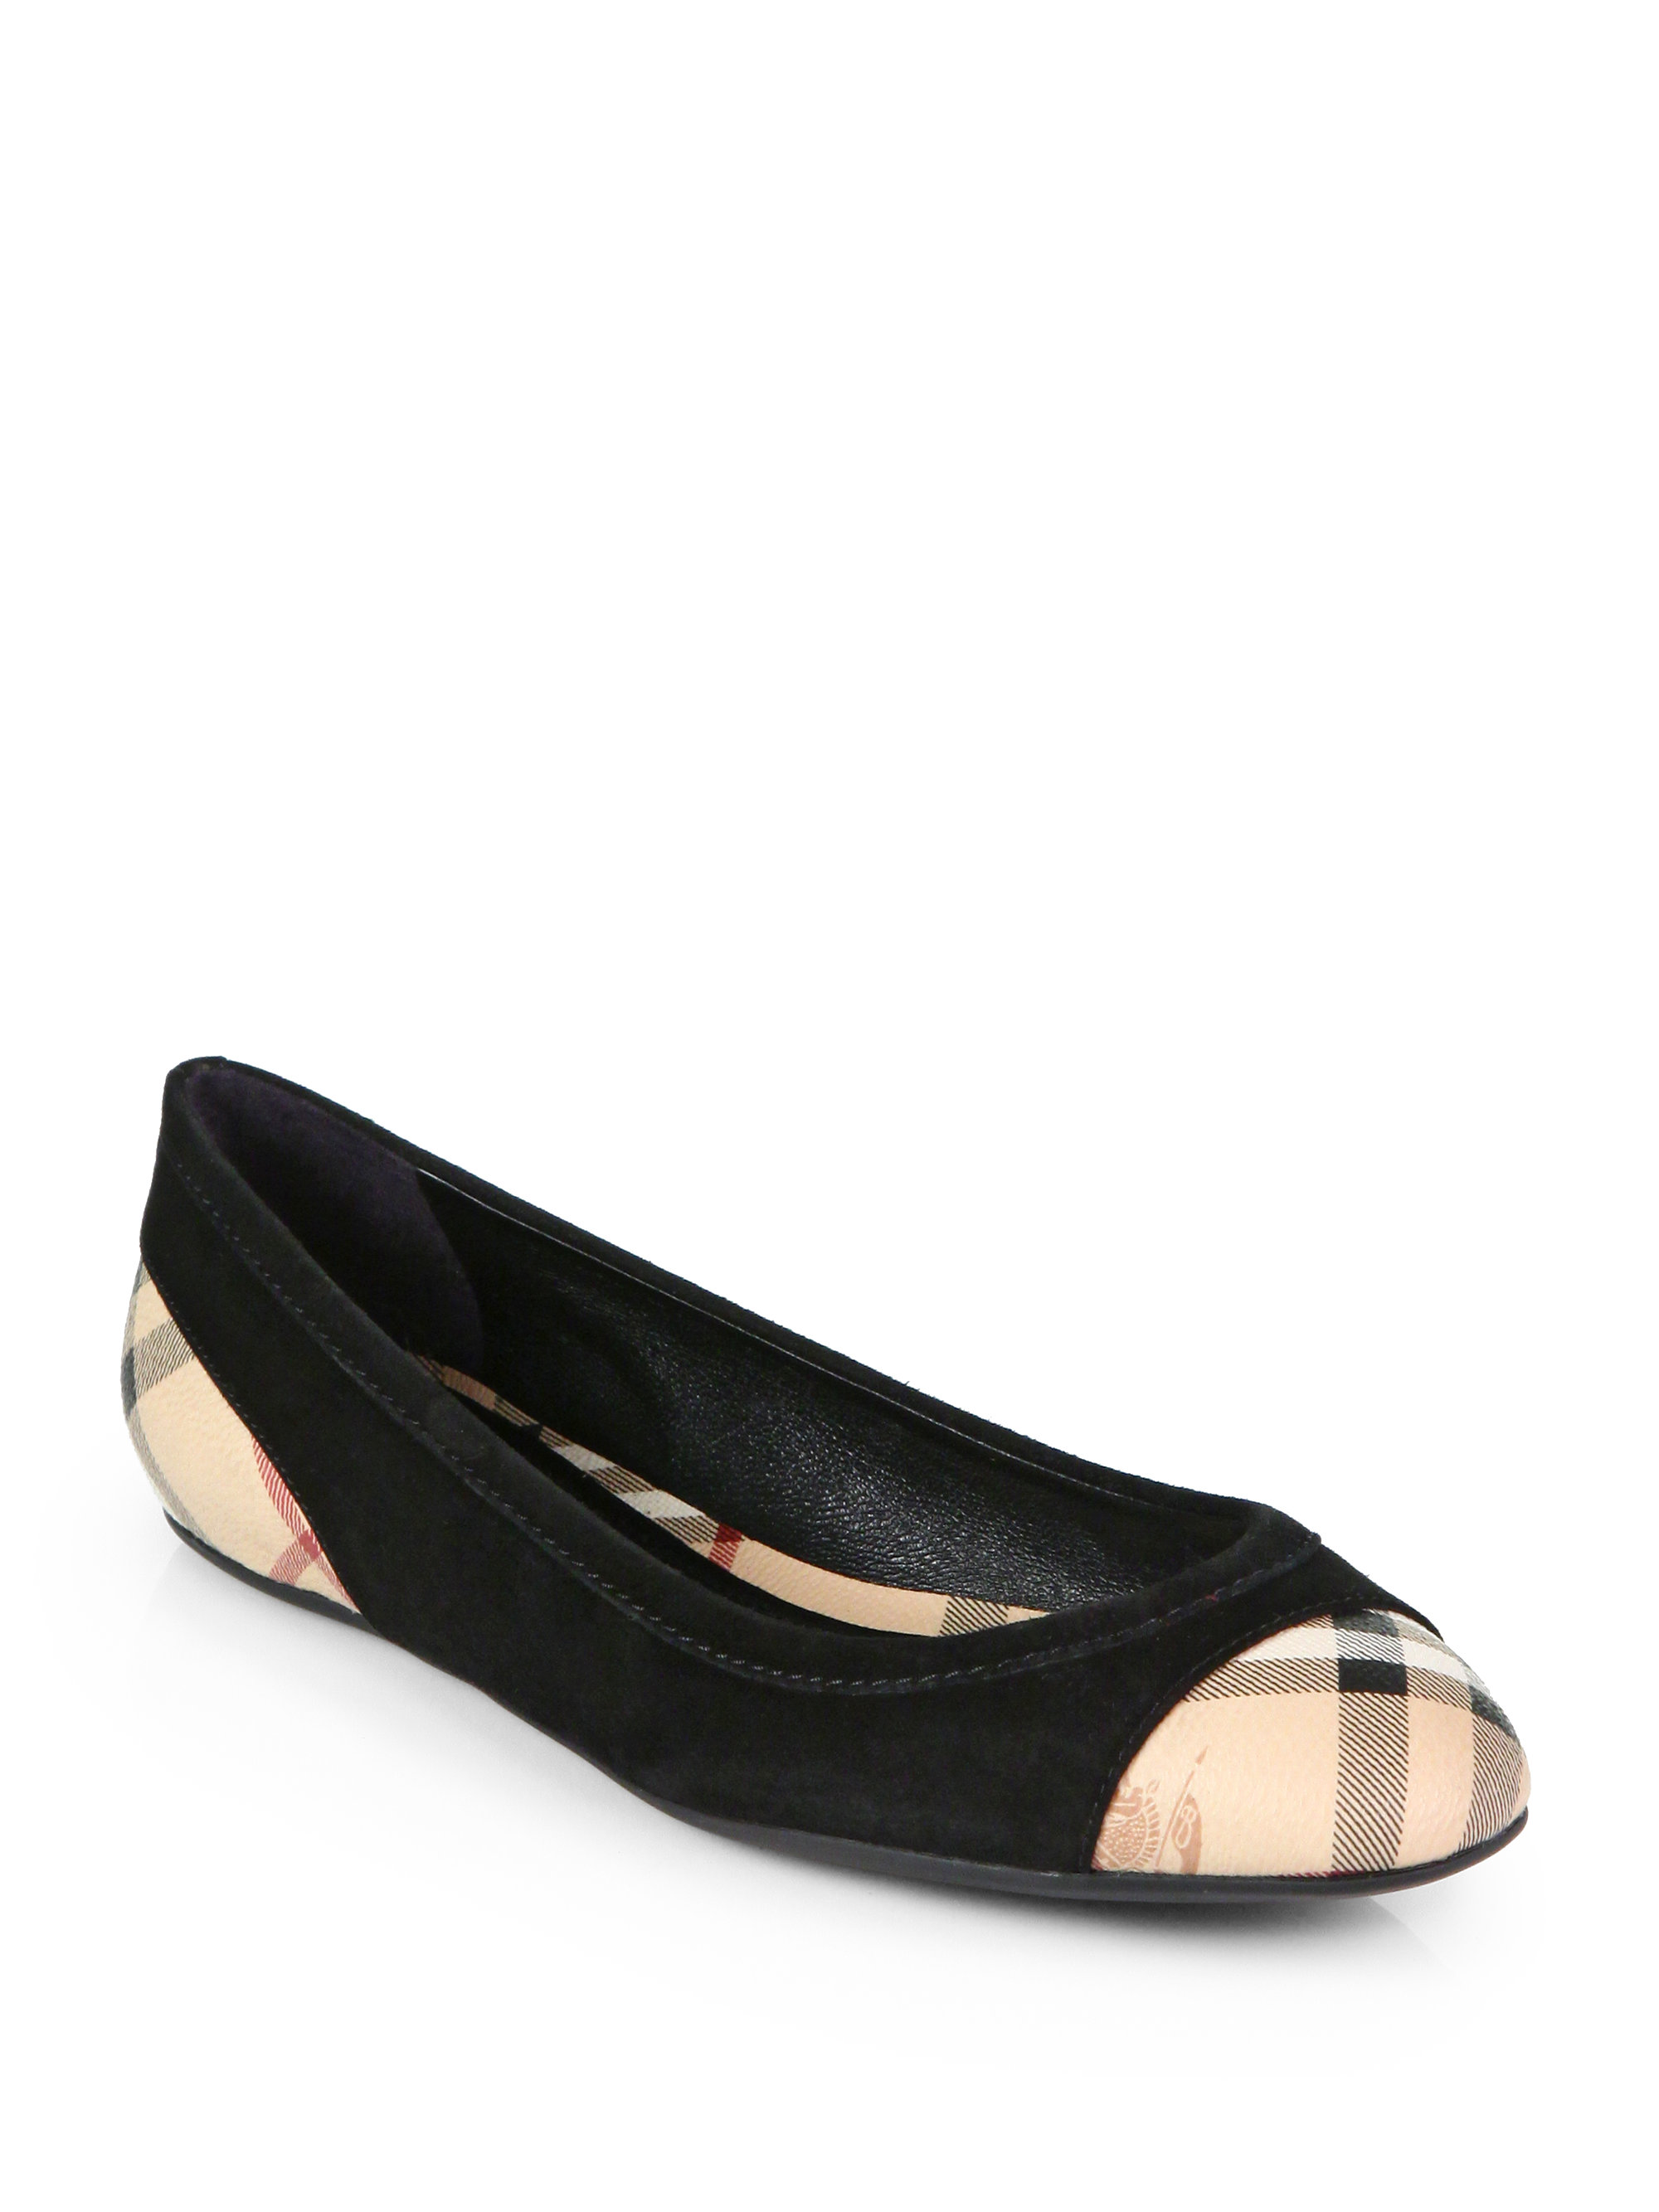 5d0183c4b63 Lyst - Burberry Highsmith Check Leather Suede Ballet Flats in Black